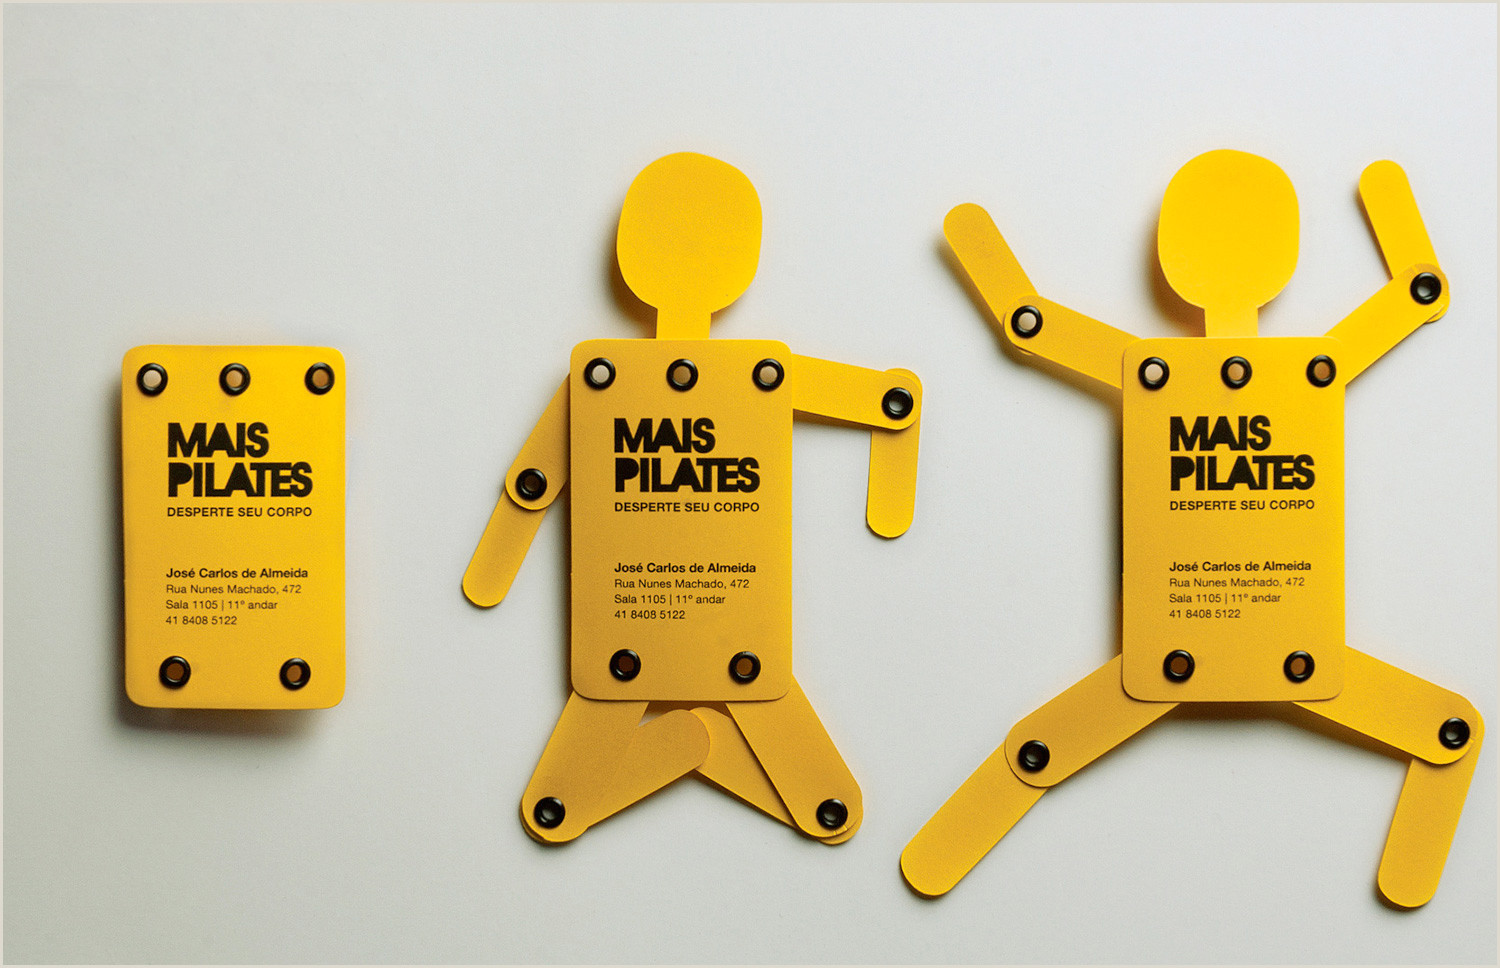 The Best Business Cards In The World 7 Latest Business Card Design Ideas That Work Wonders